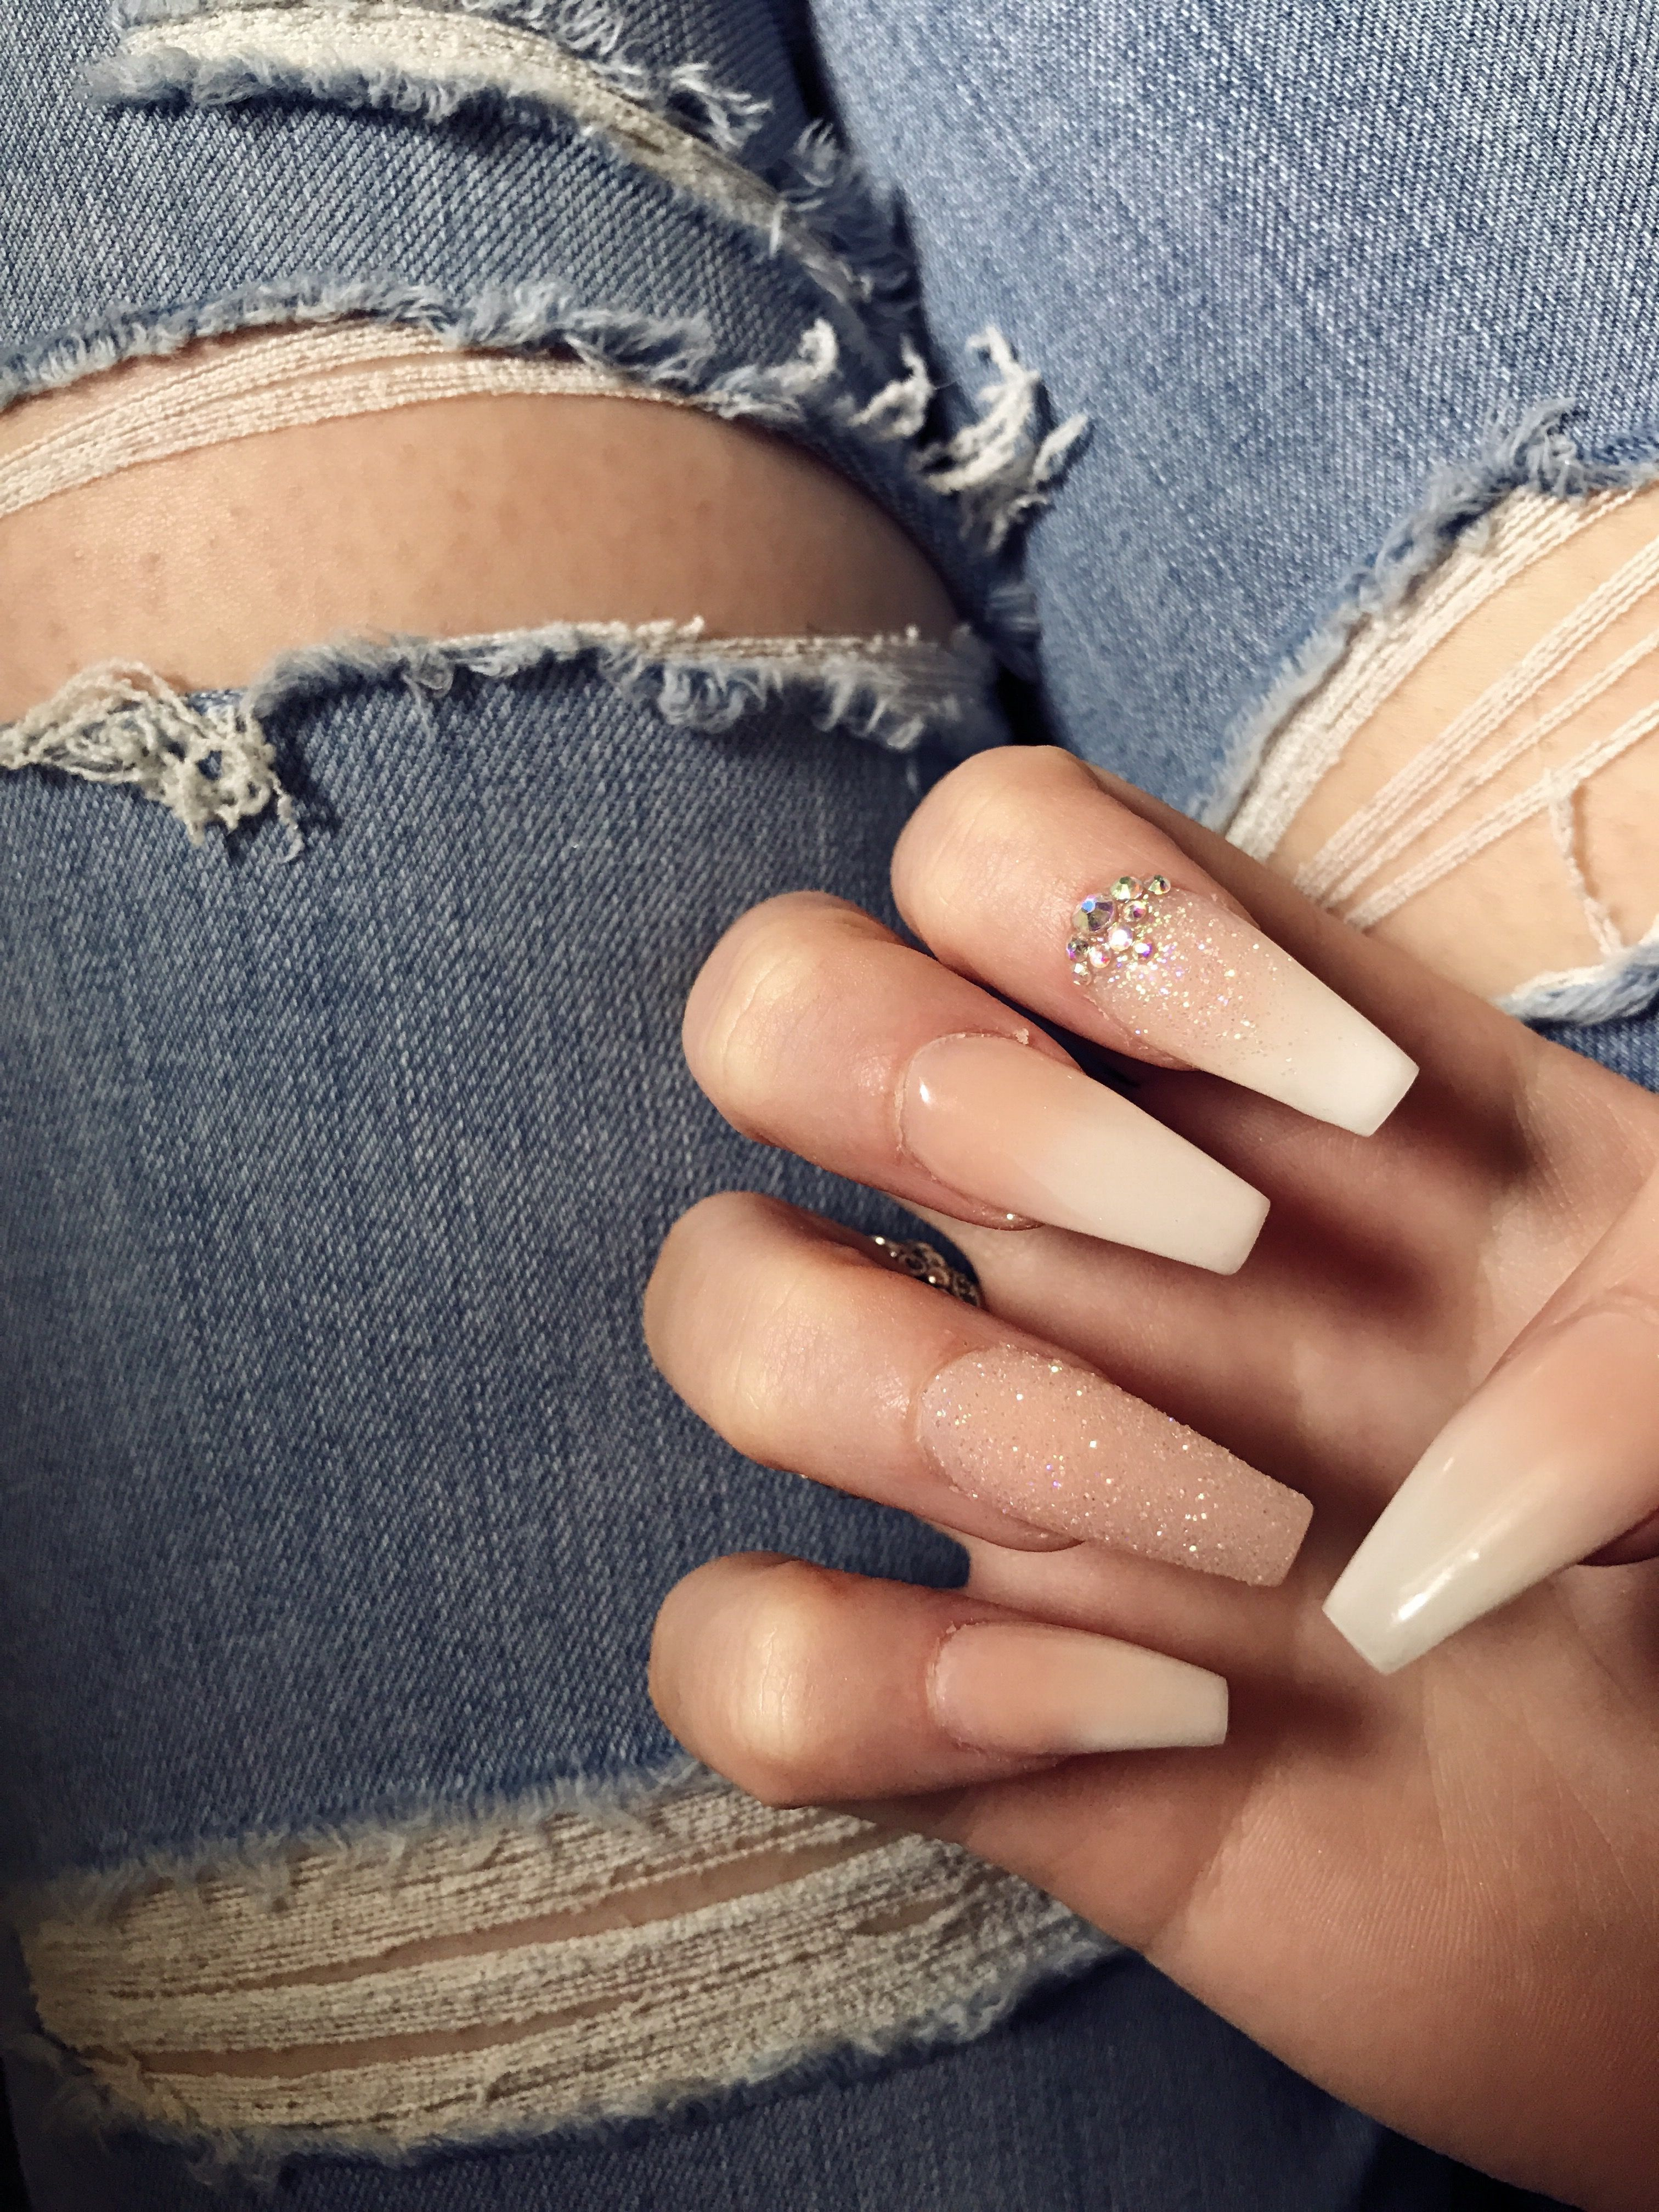 Pin by Mariana on Nails  Pinterest  Nails Nail Art and